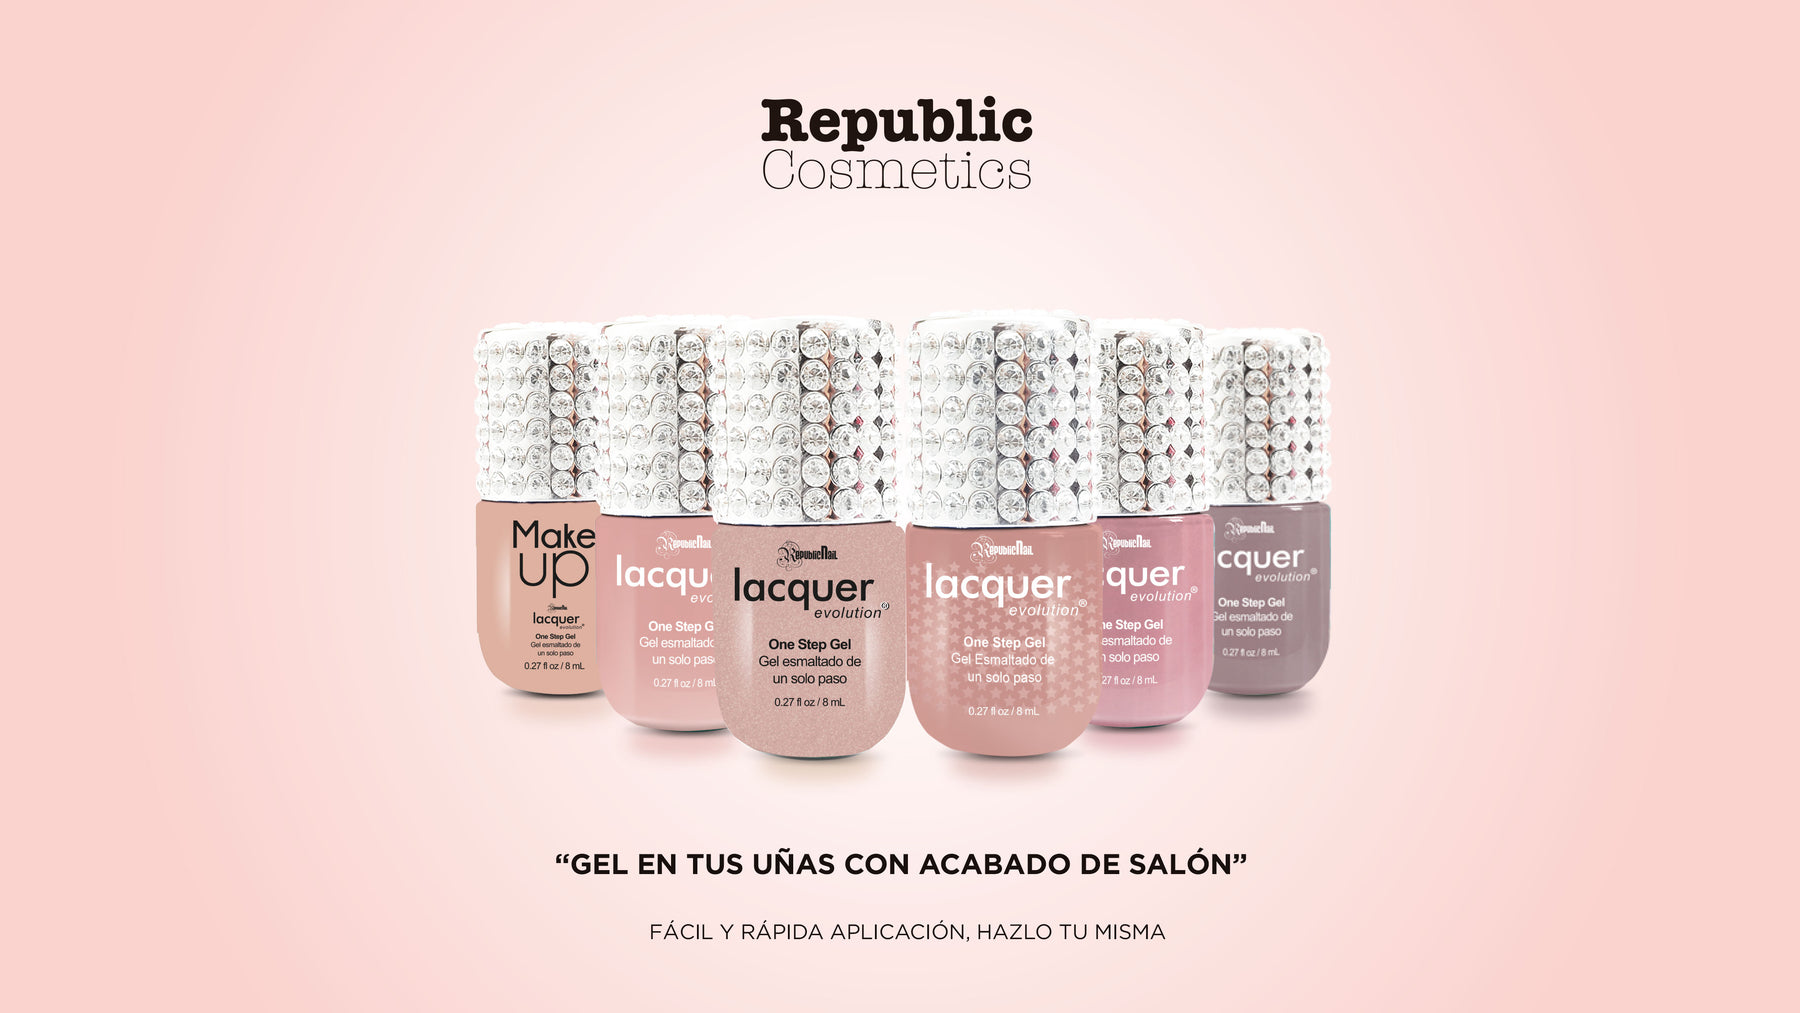 Republic Cosmetics